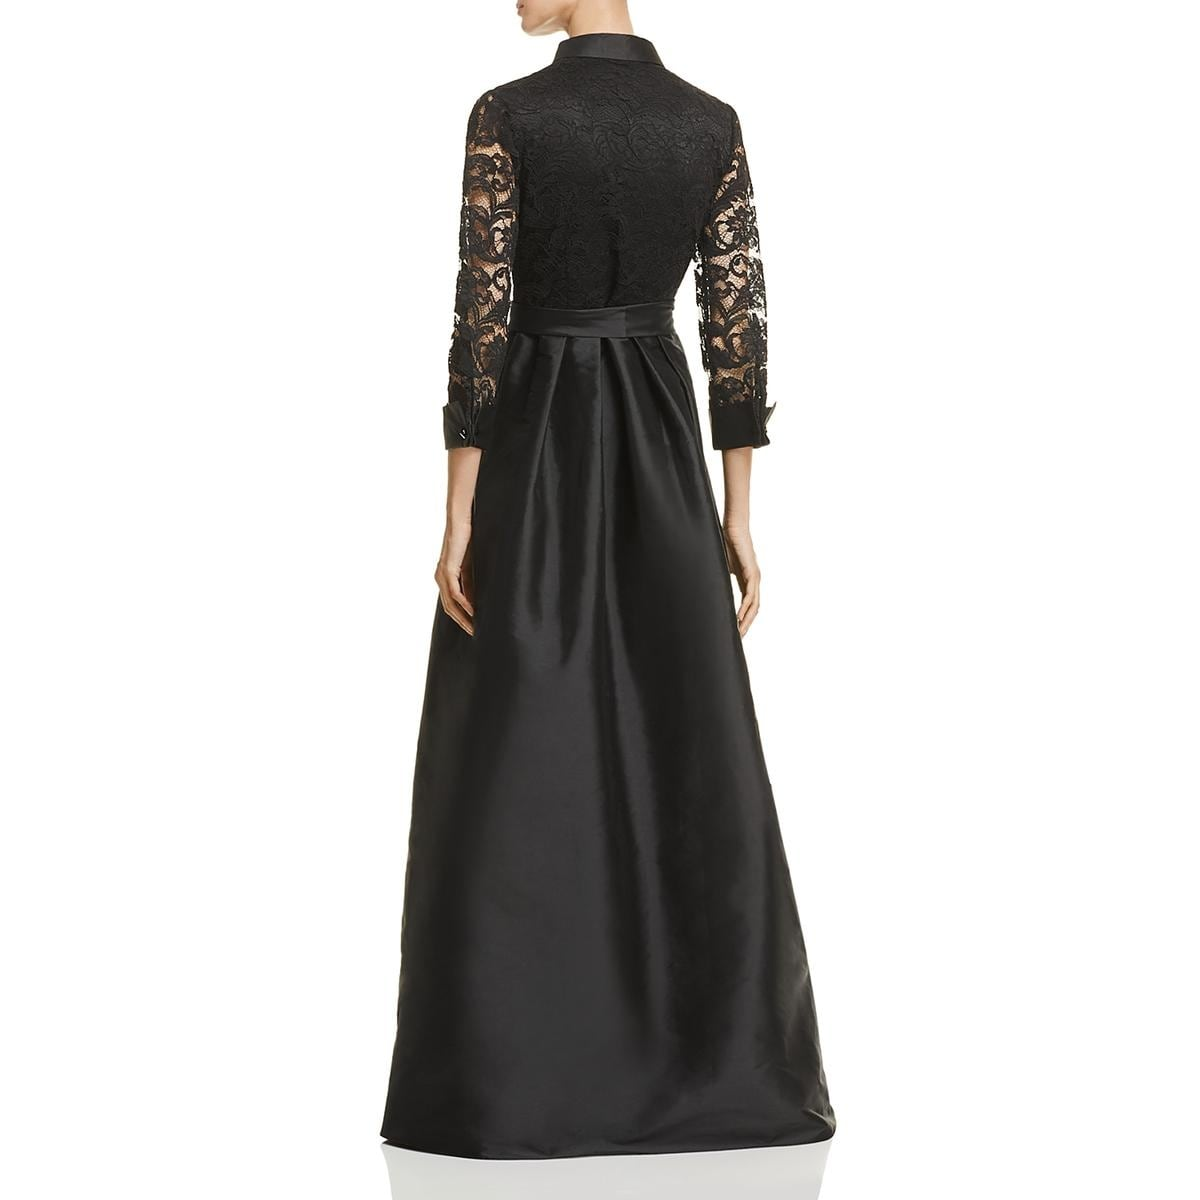 Shop Adrianna Papell Womens Evening Dress Lace Ball Gown - Free ...